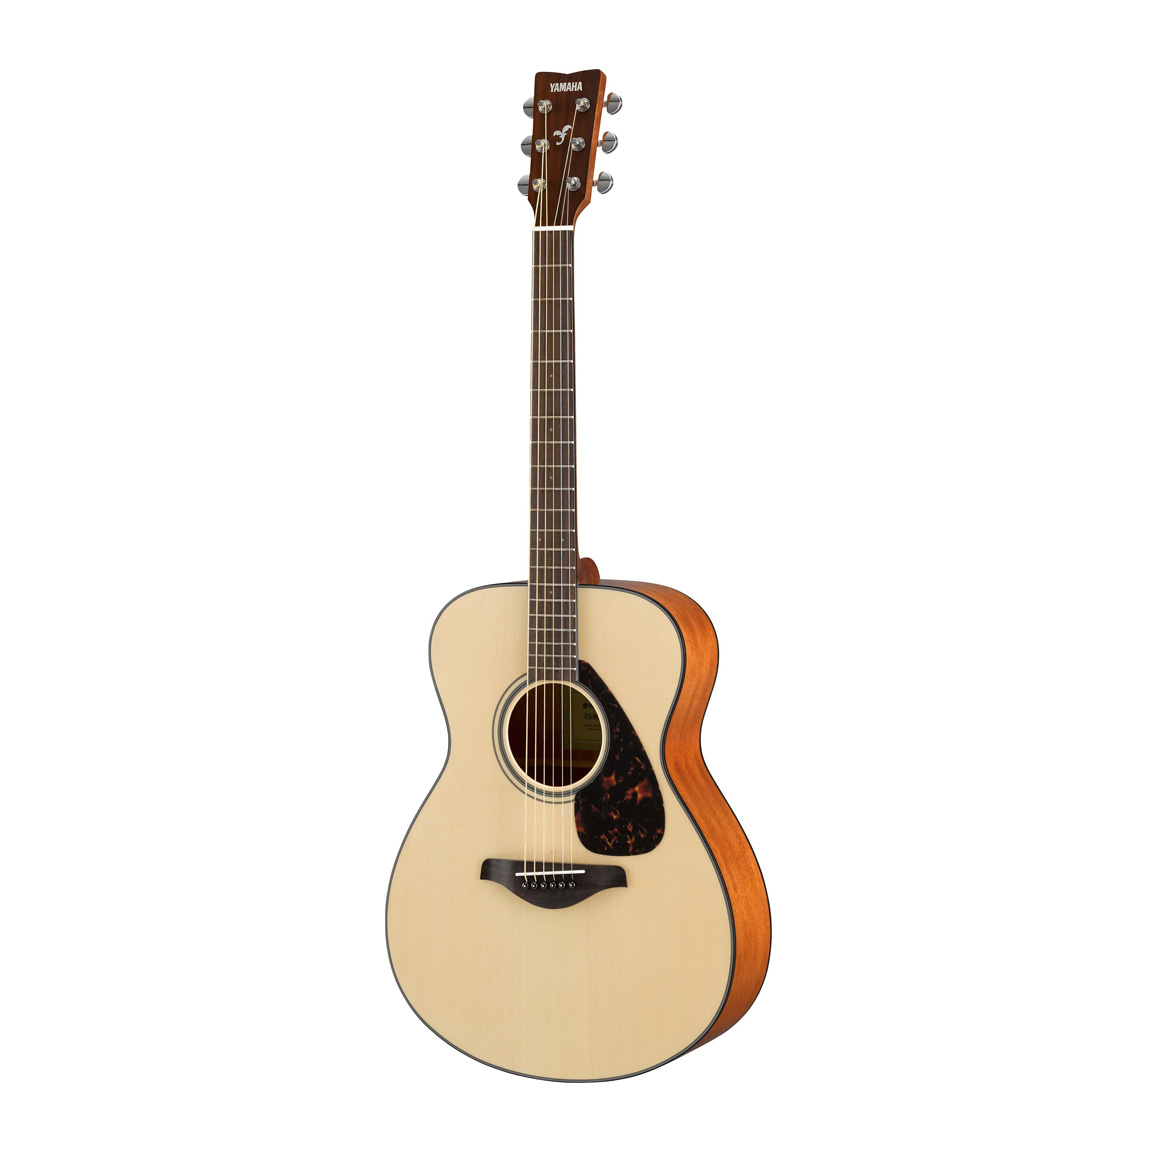 Image for FS800 - Acoustic Guitar from Yamaha Music Online Shop